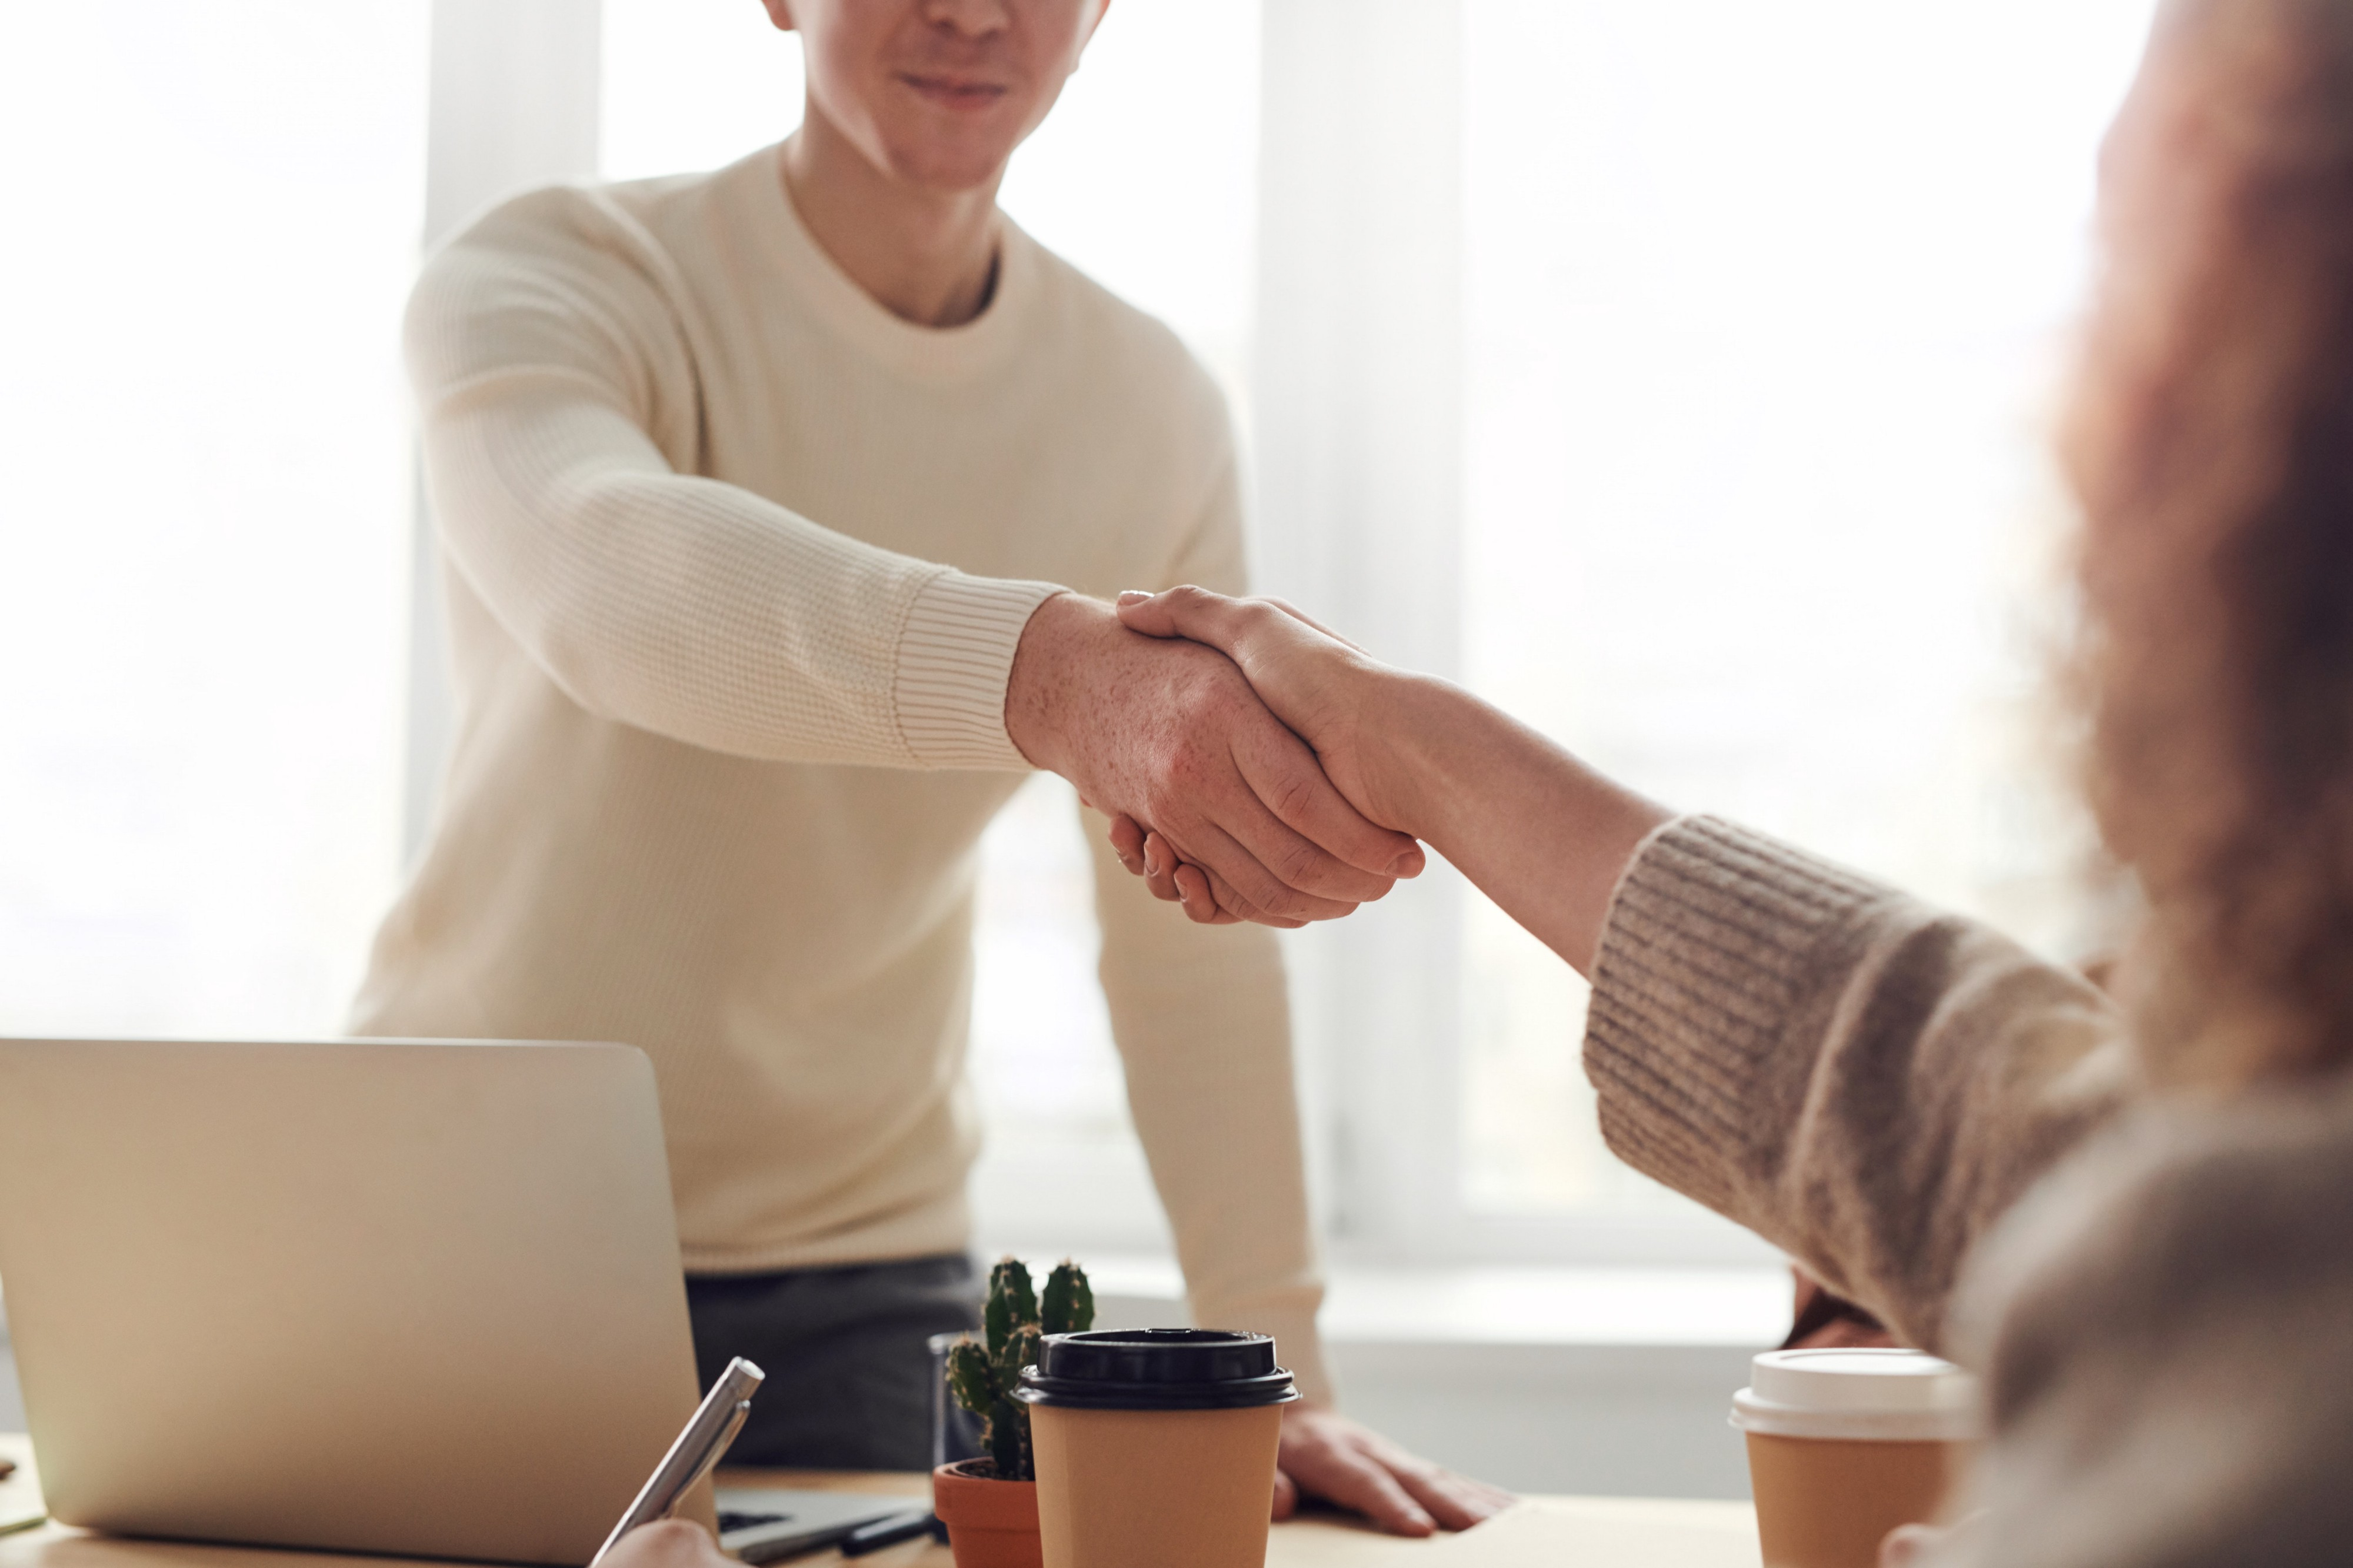 Men and woman shaking hands across a table in an office setting.